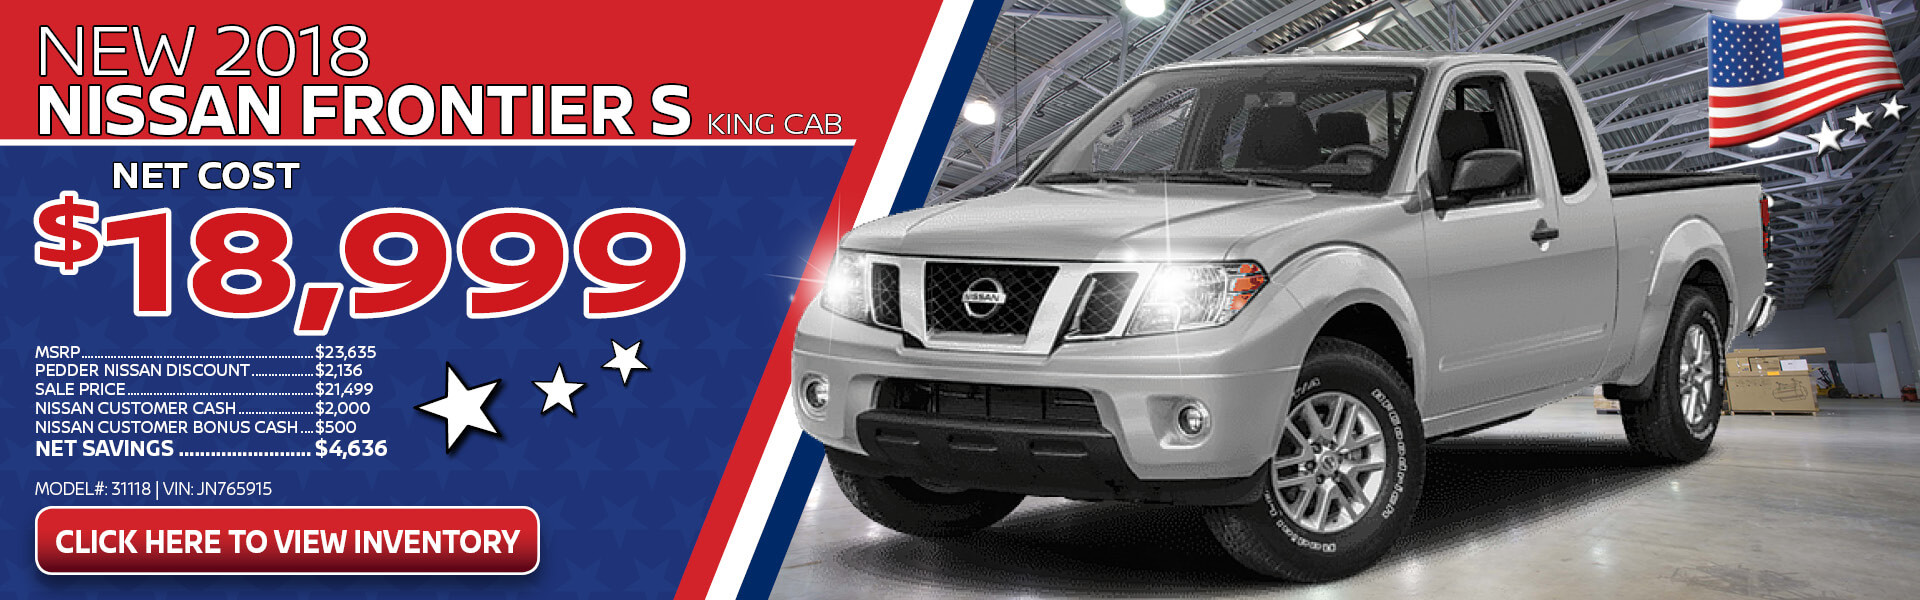 Nissan Frontier Purchase $18.999